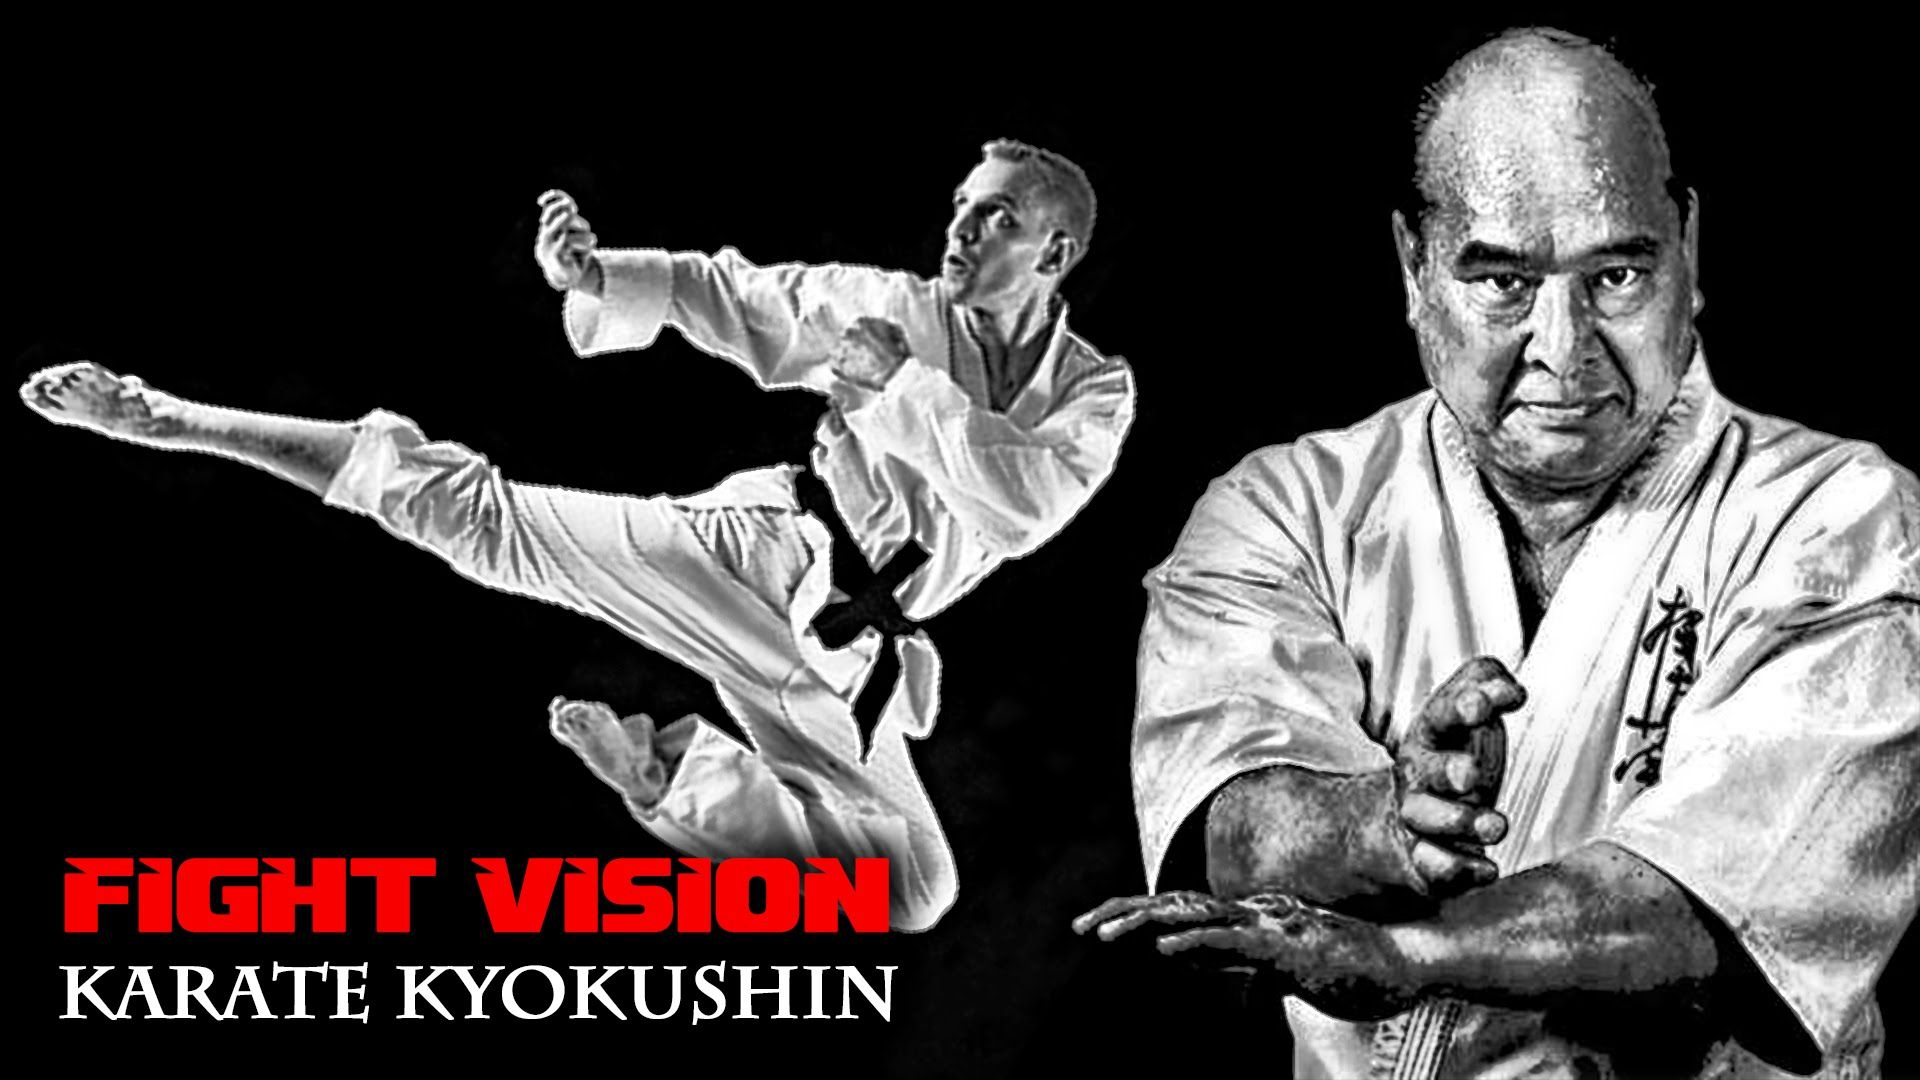 mae geri 前蹴 front kick kyokushin karate fight vision